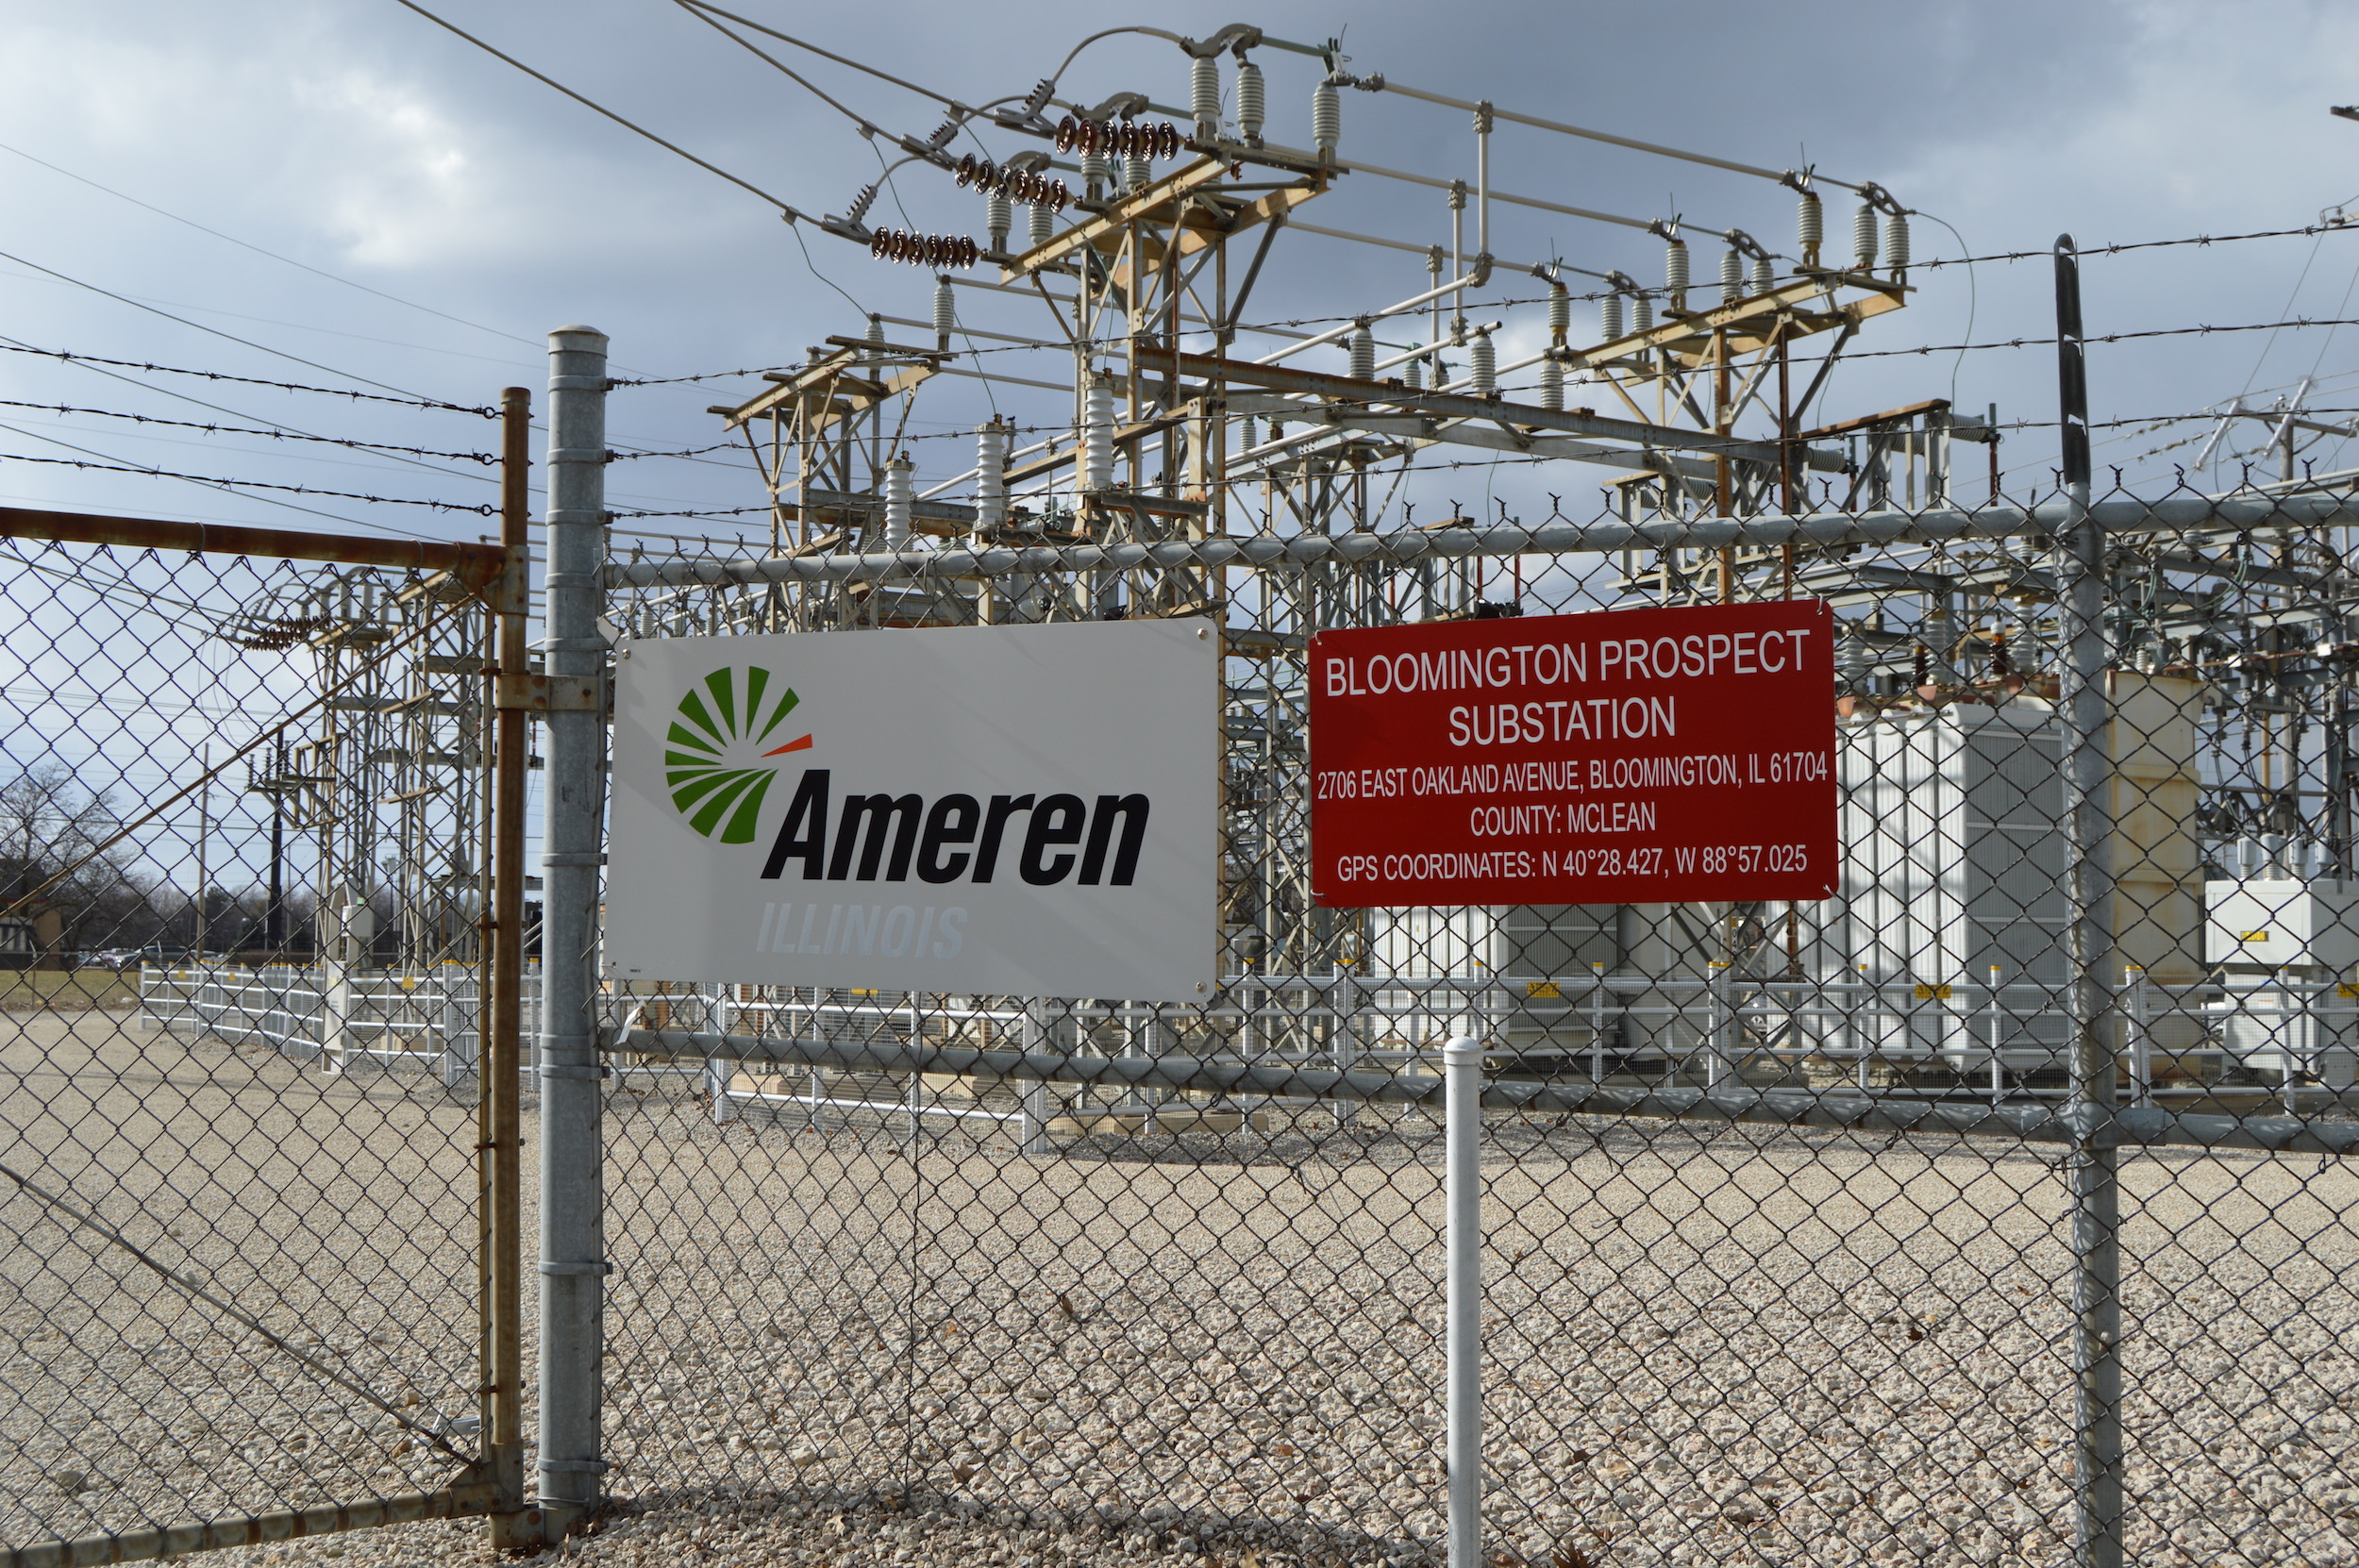 Ameren will pass on savings from the latest tax cut in the form of reduced natural gas and electricity bills for Bloomington-Normal residents. (Image Credit: Breanna Grow)